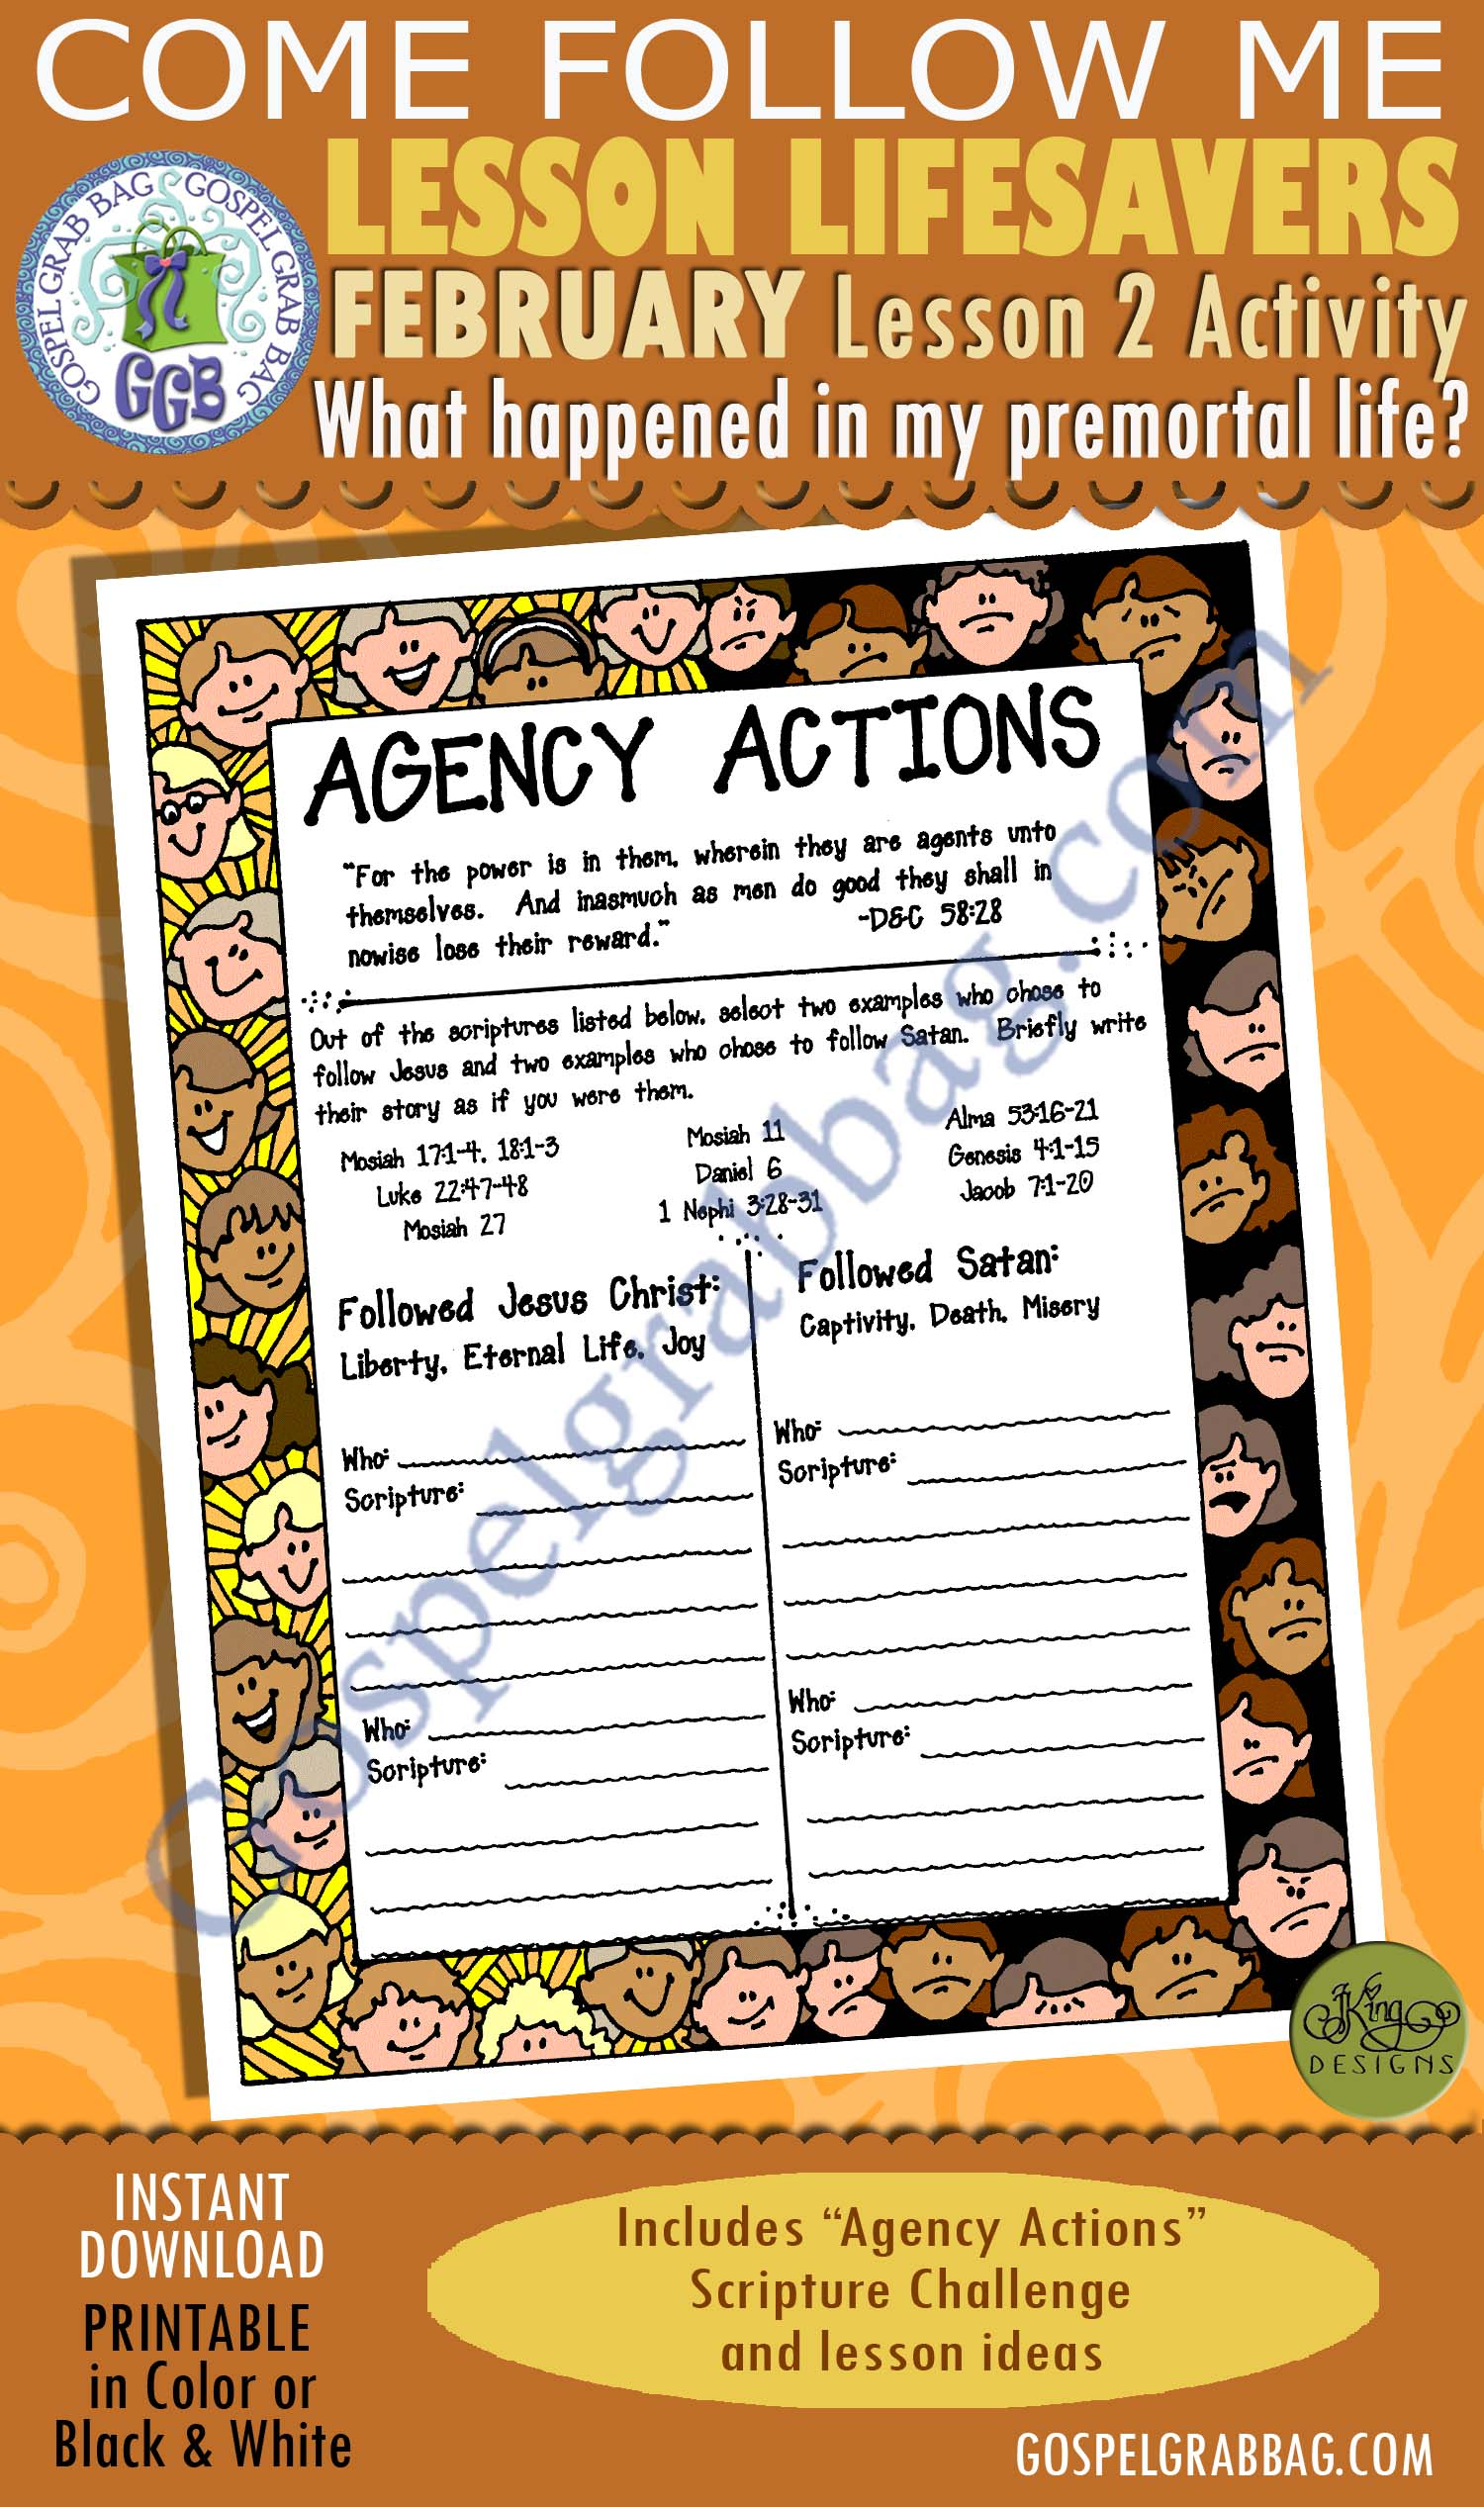 "$1.75 February Lesson 2 - Come Follow Me ""What happened in my premortal life?"" ACTIVITY: Agency Actions"